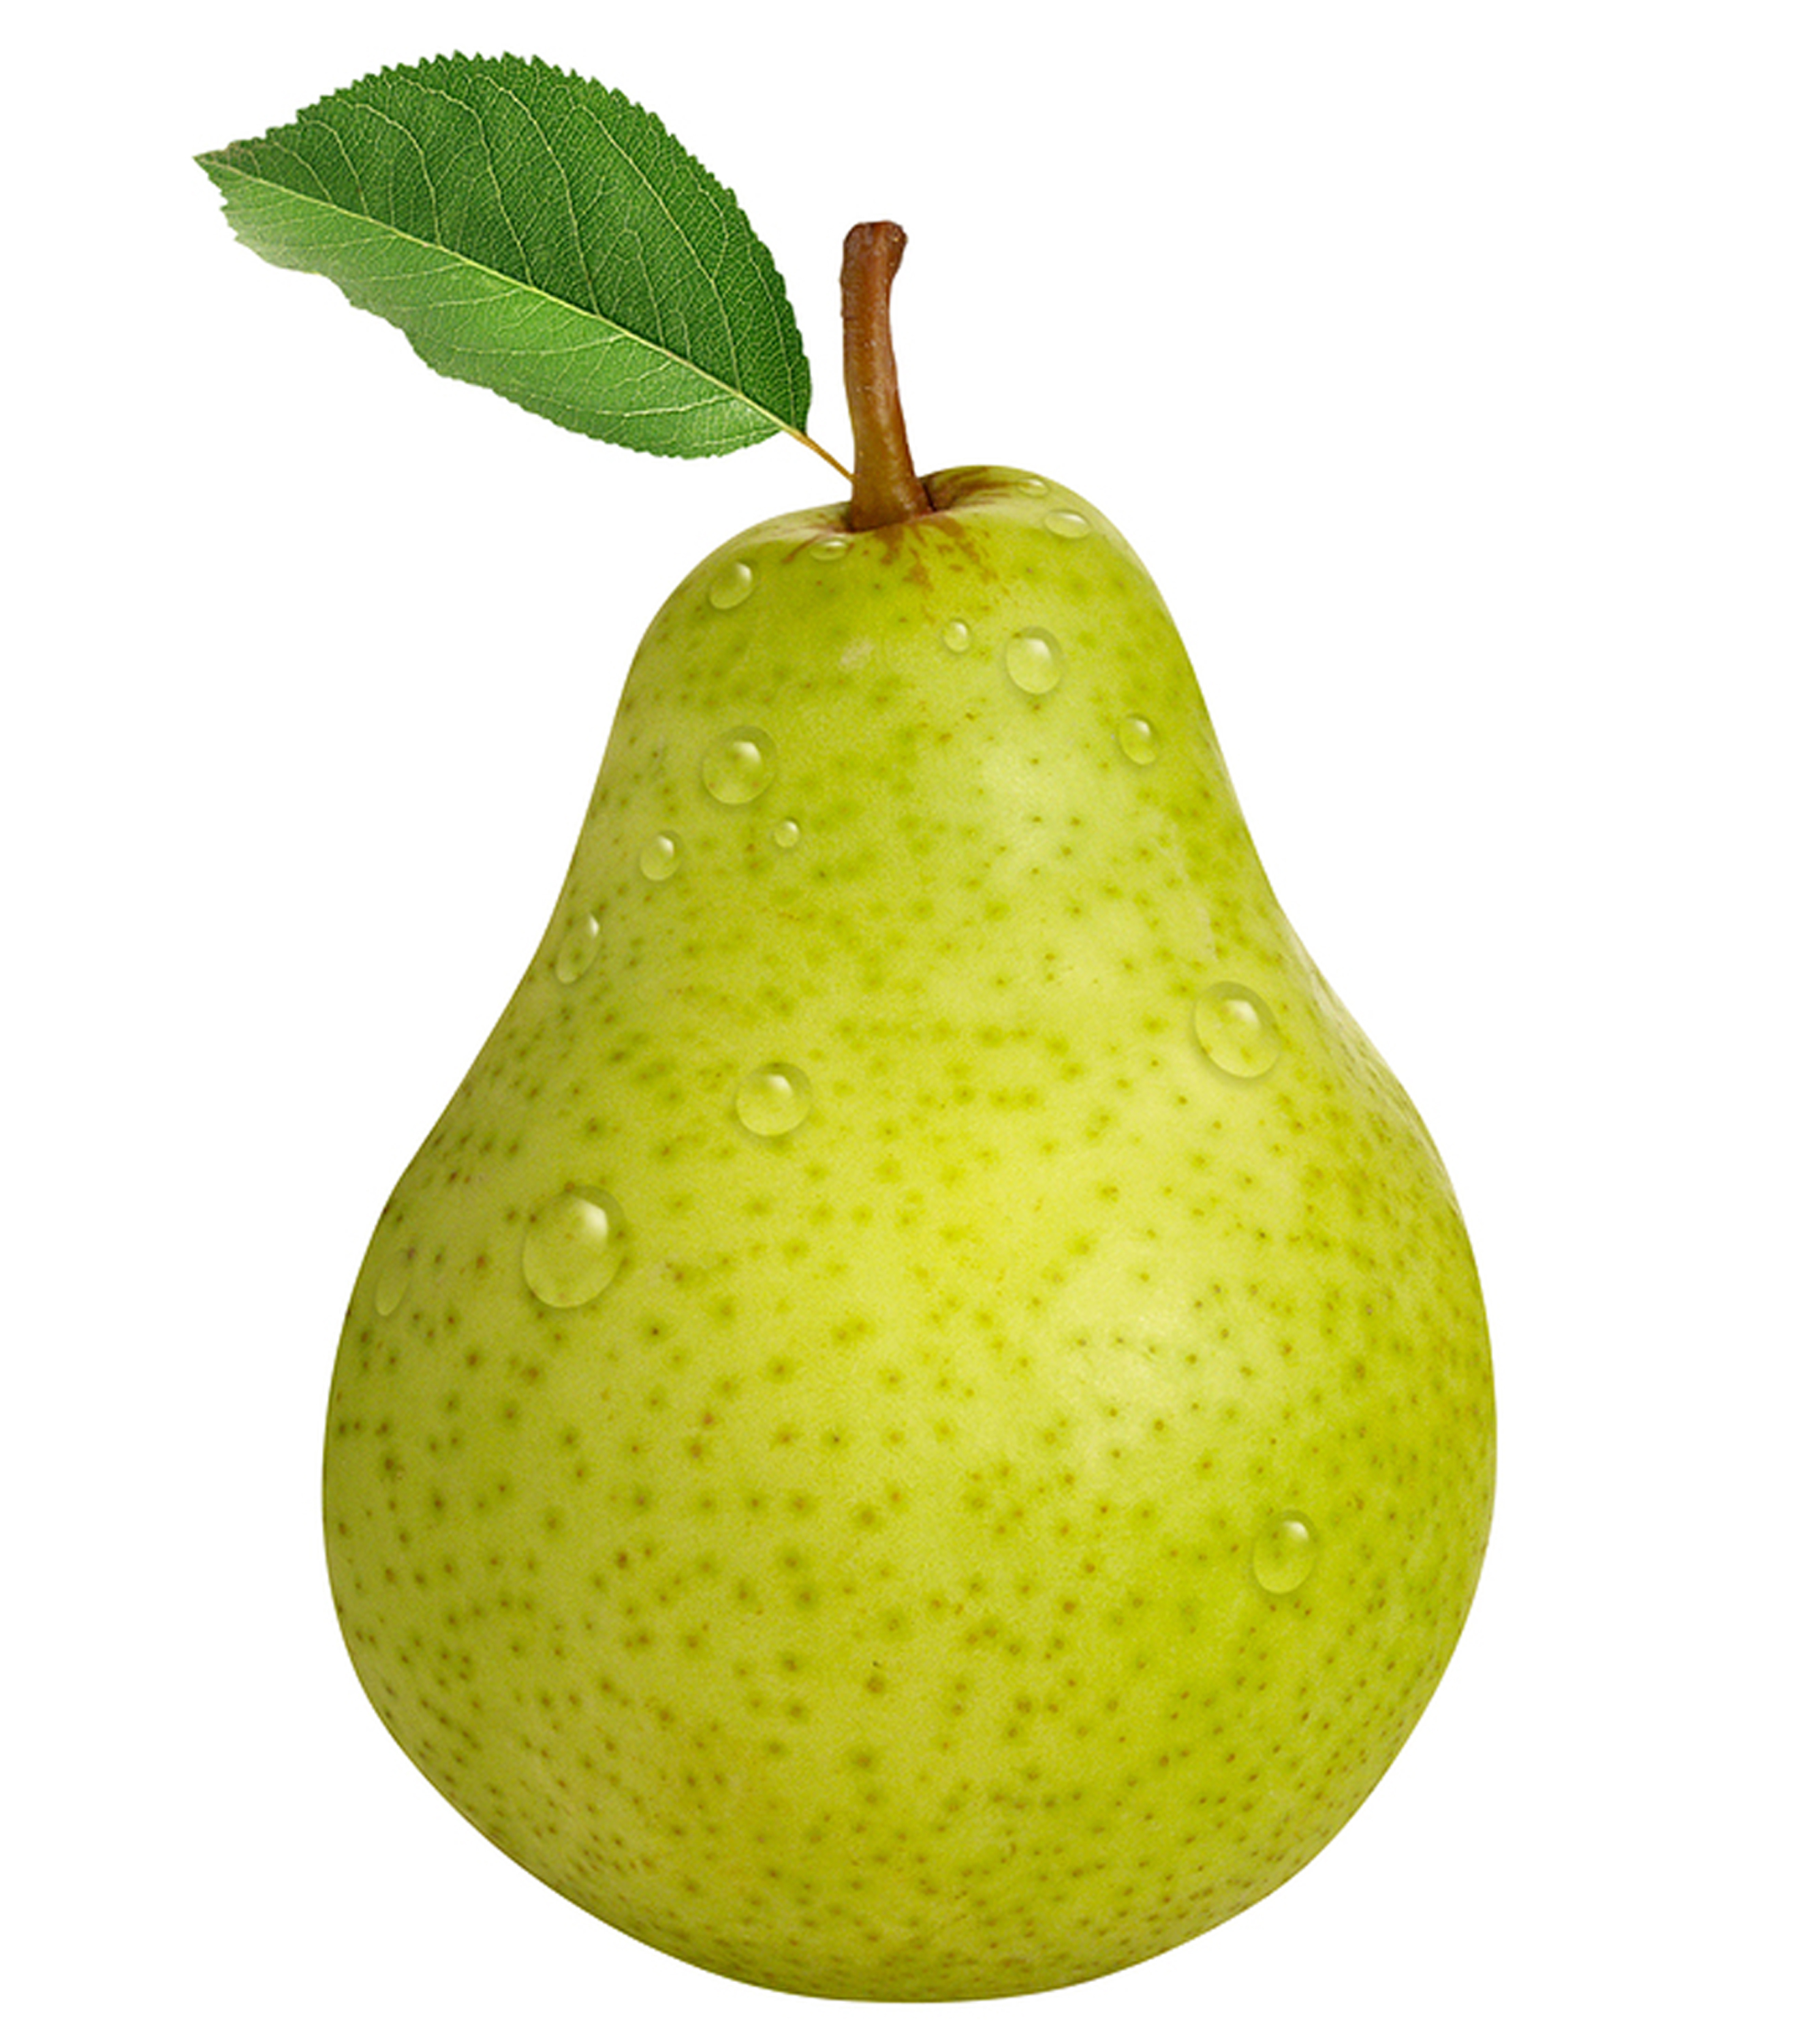 Green Pear with Water Drops 345.57 Kb